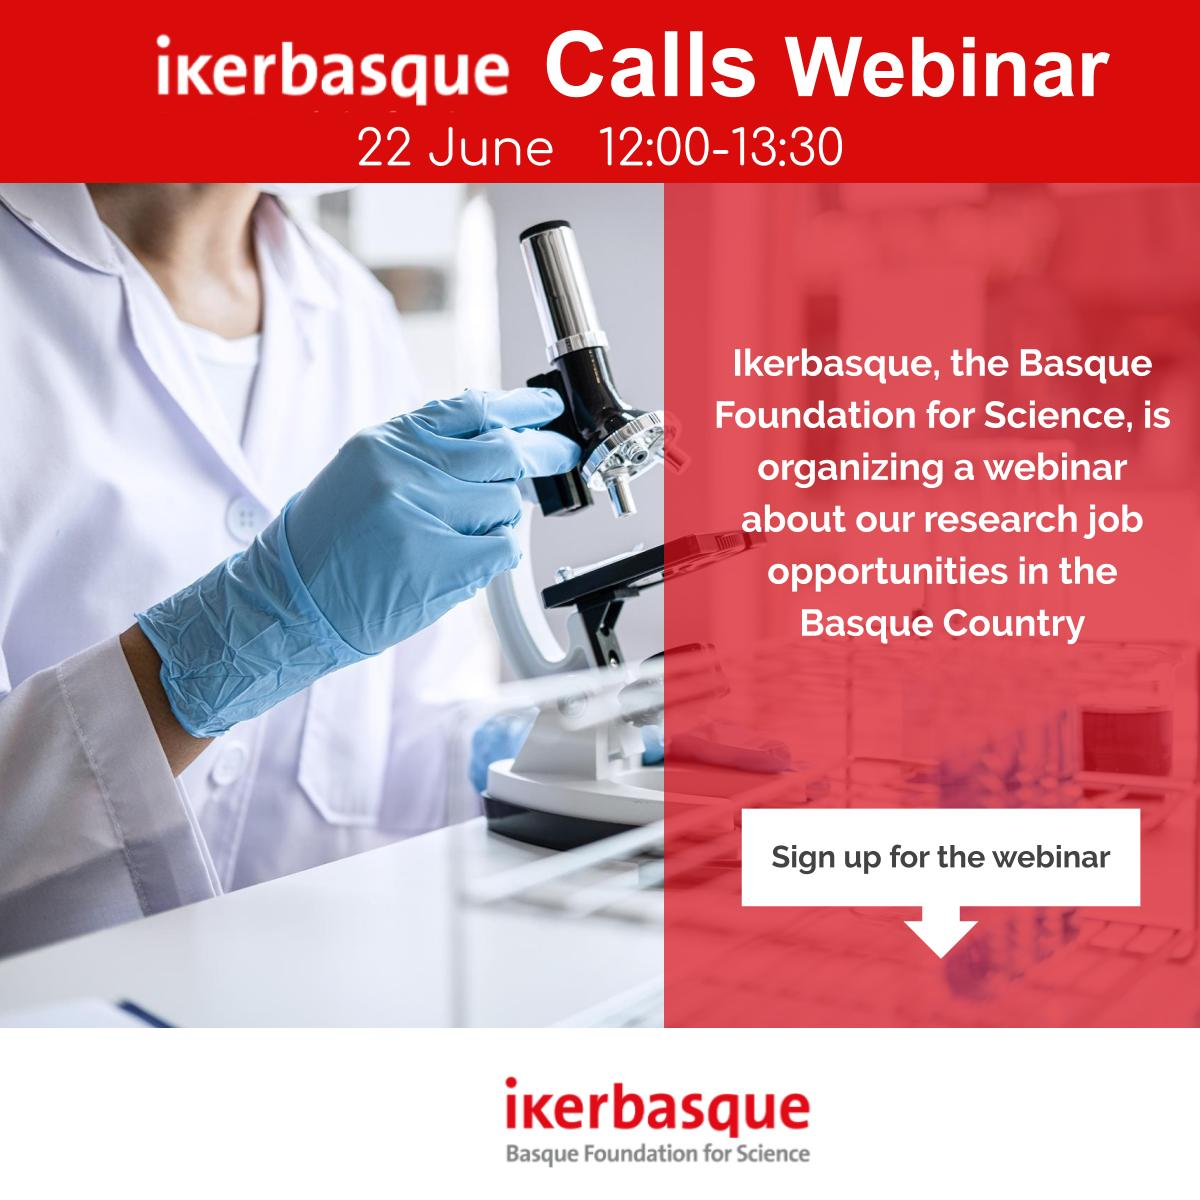 Wer are organizing a webinar about our research job opportunities in the Basque Country 🔴 Annually Ikerbasque offers 30 research positions for experienced postdoctoral researchers ⏩ This webinar will be in English 📌 Sign up for the webinar: https://t.co/CzCkeaJXJB https://t.co/WhA2o0170Y